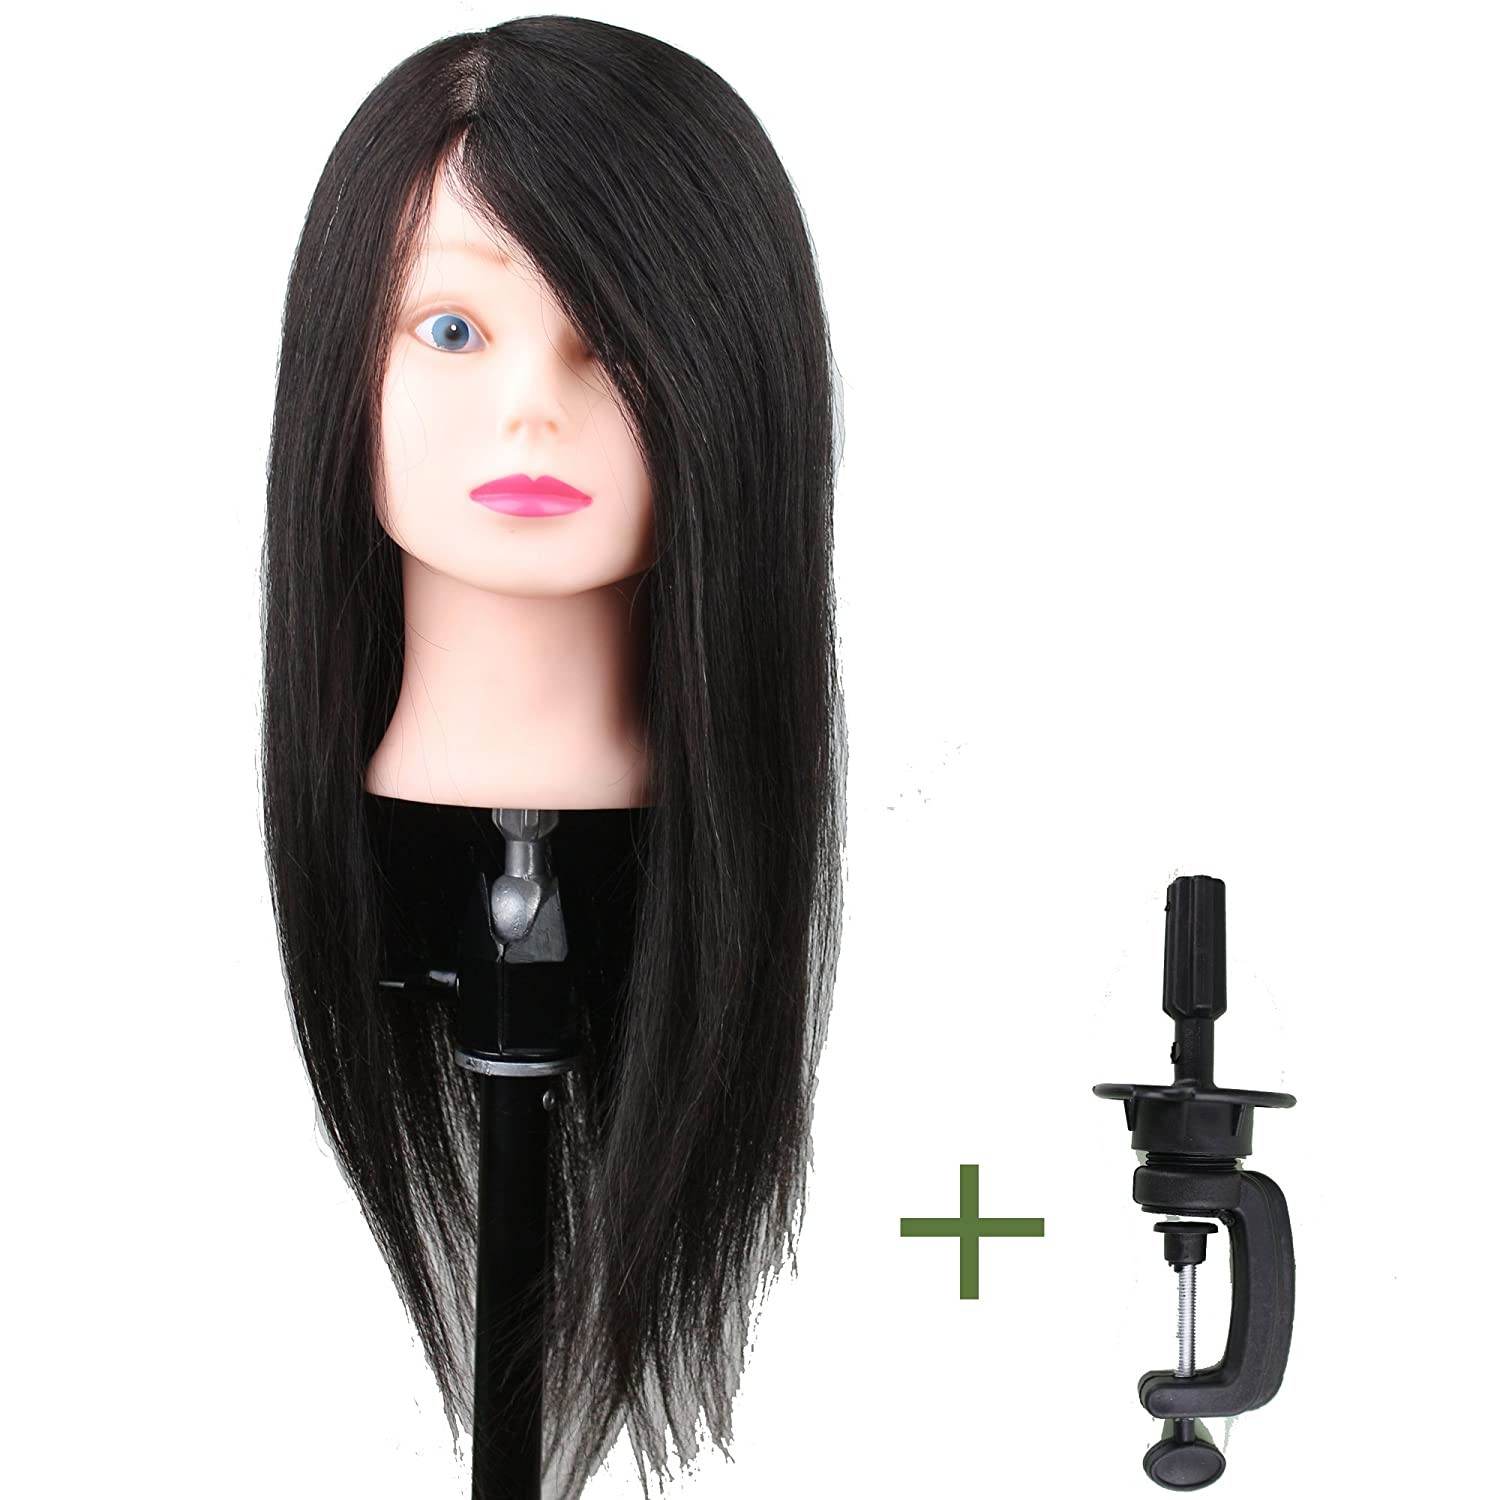 Dreambeauty Salon Trainning Head with Hair and Clamp Holder 22inch Real Human Hair Style Free Black Color Qingdao Feiyang Hair Co. Ltd